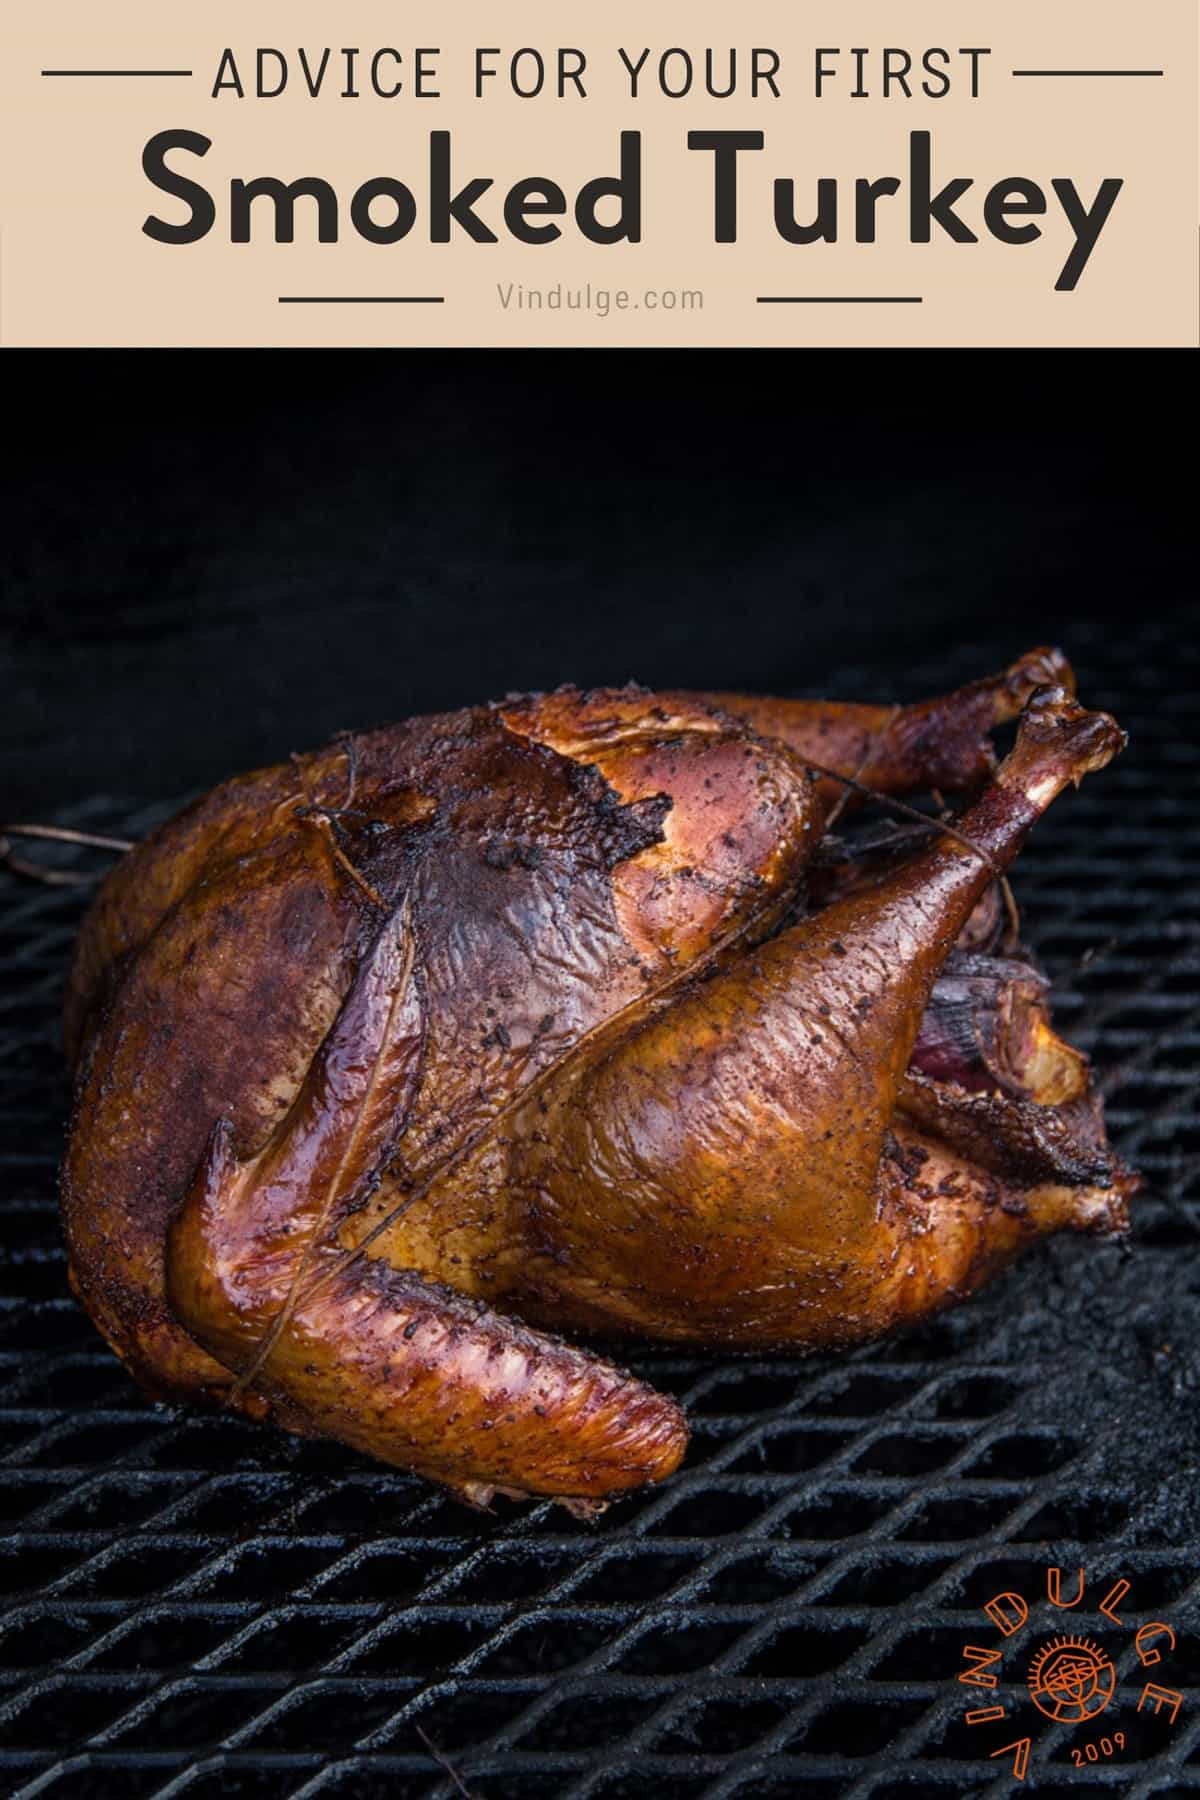 """A smoked turkey with a text caption that reads """"advice for your first smoked turkey"""""""